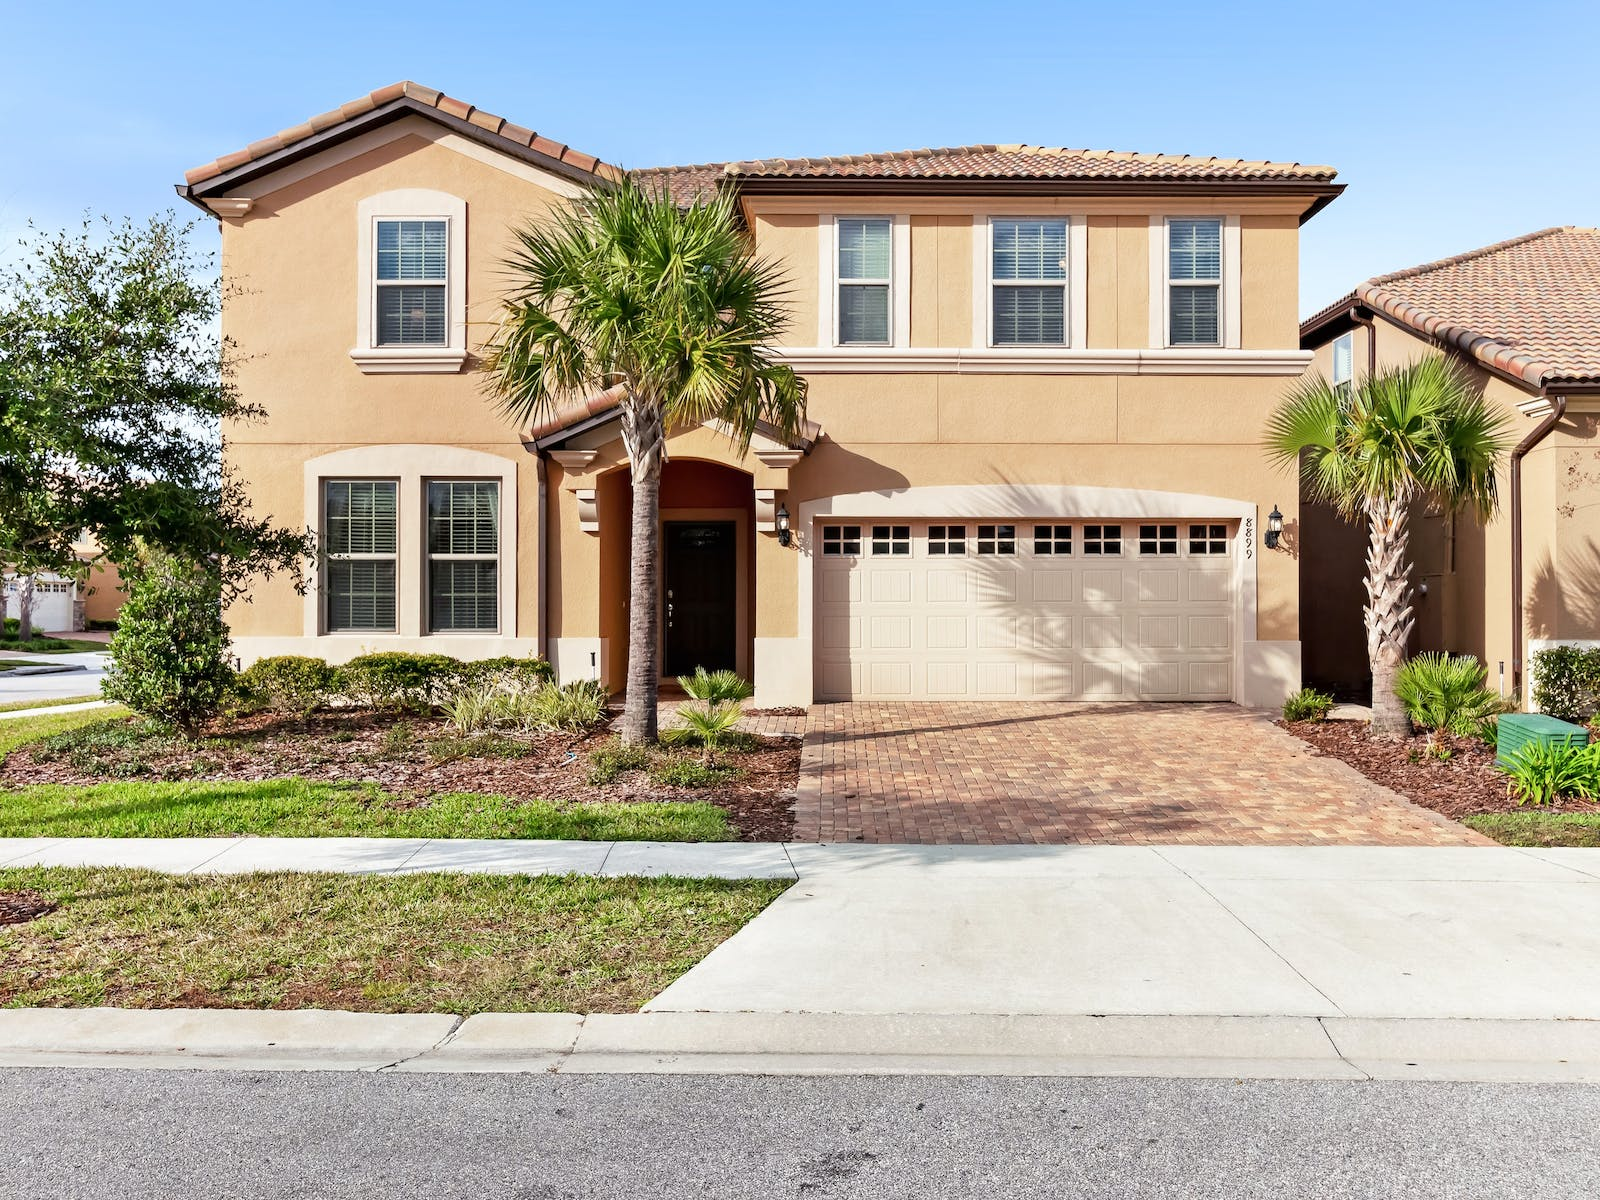 two-story home with 2 car garage in kissimmee, fl